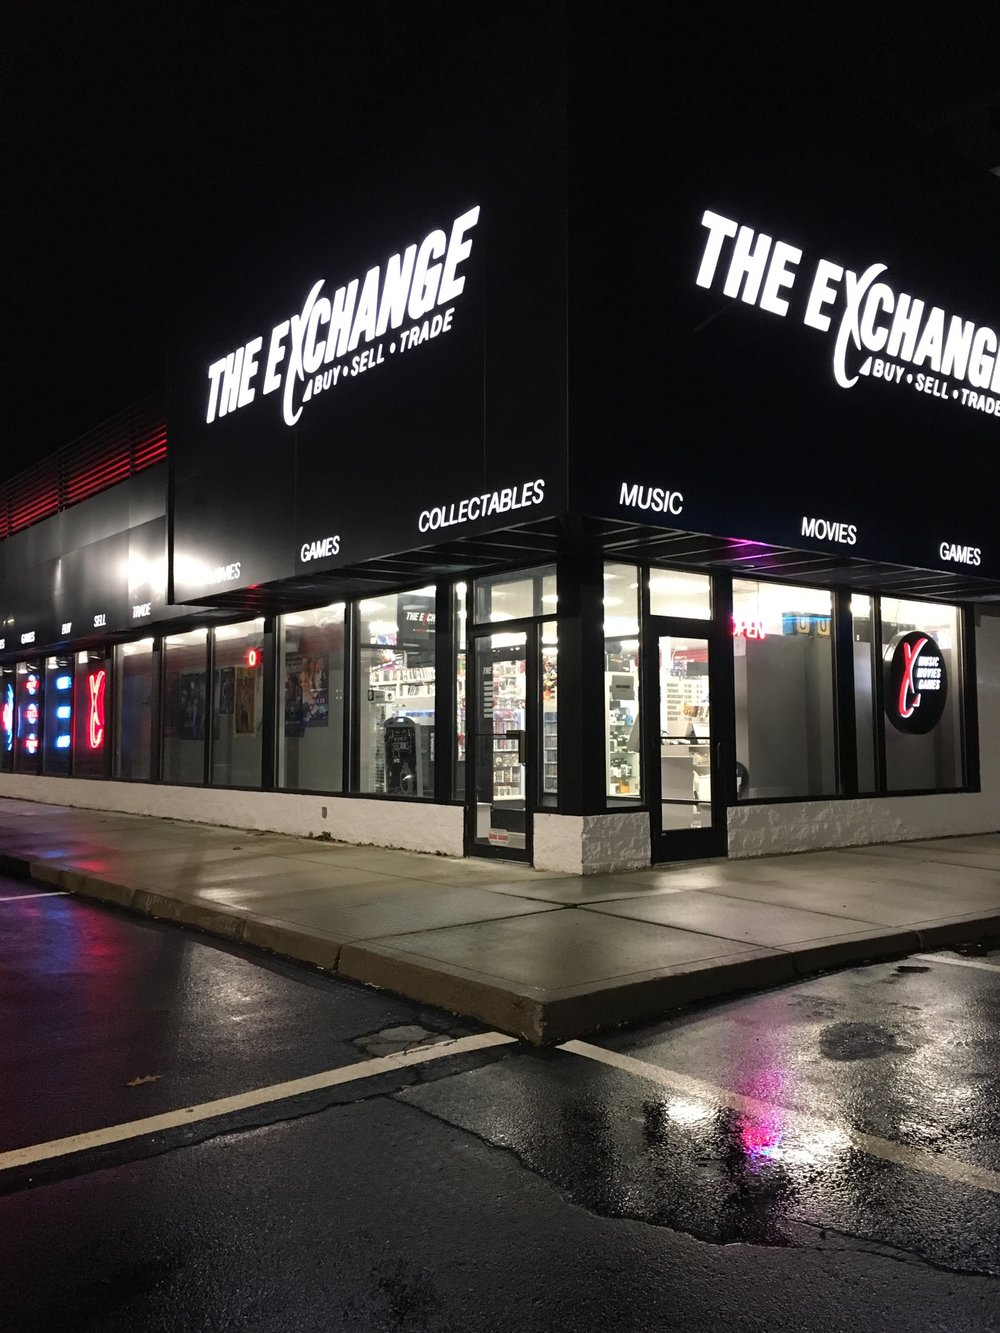 The Exchange - 4776 McKnight Road Ross Township, PA 15237(412) 635-3170